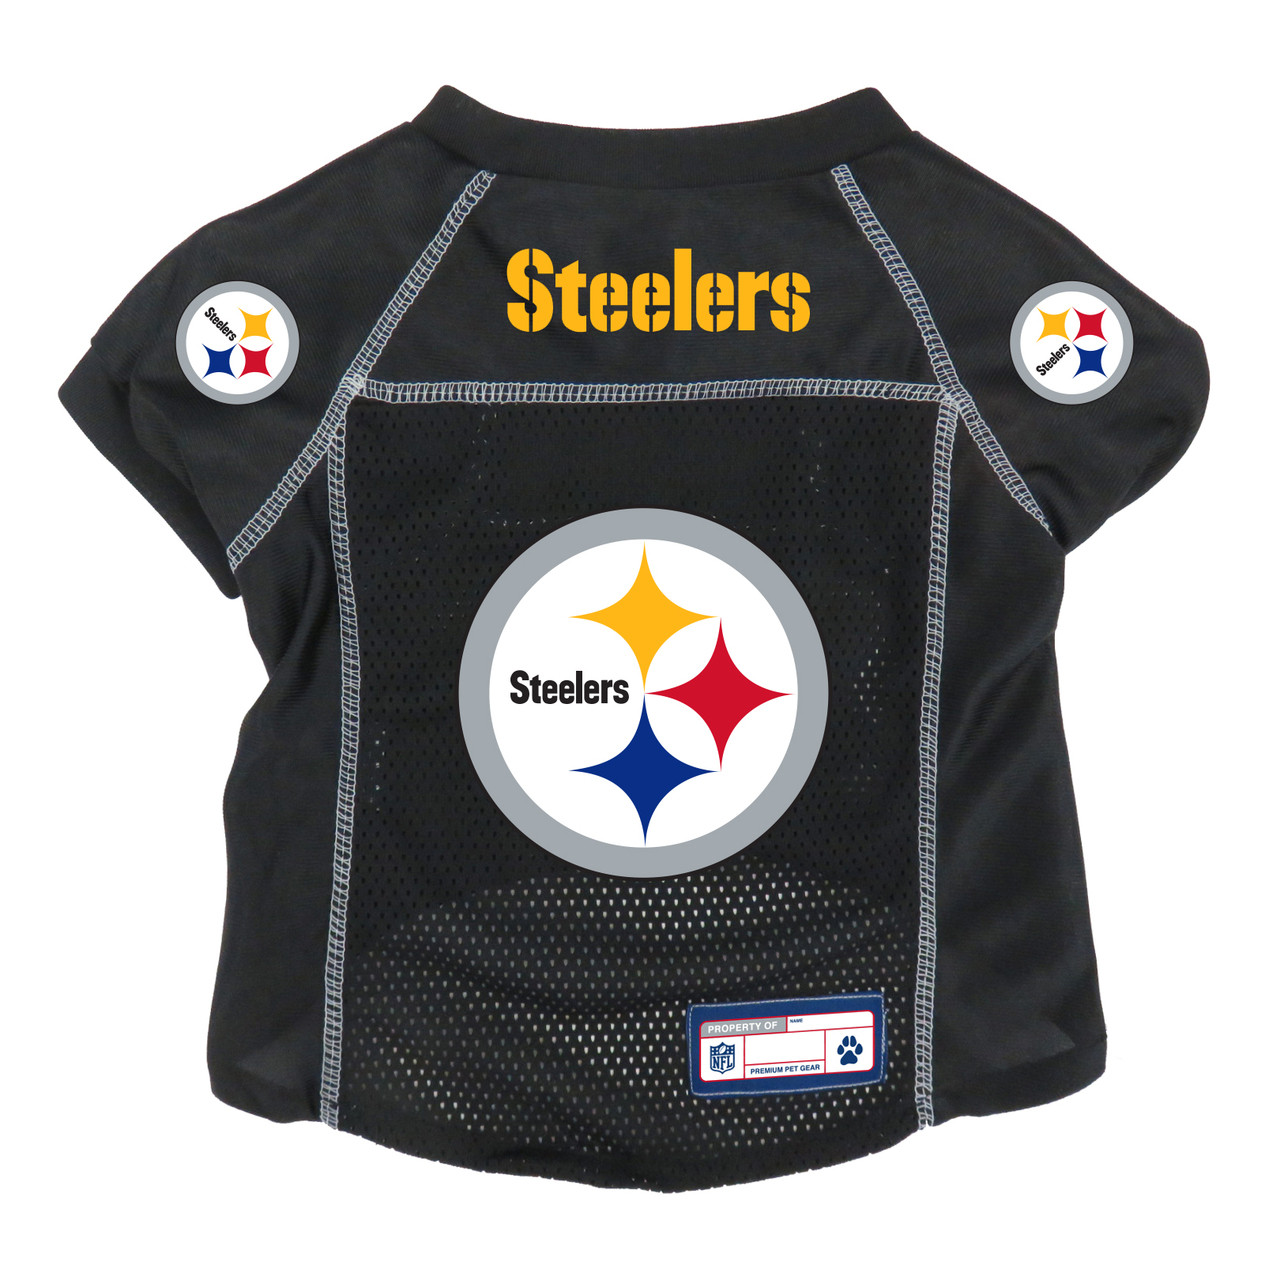 09054f569 ... Pittsburgh Steelers NFL Pet Jersey Little Earth 5 sizes. Image 1